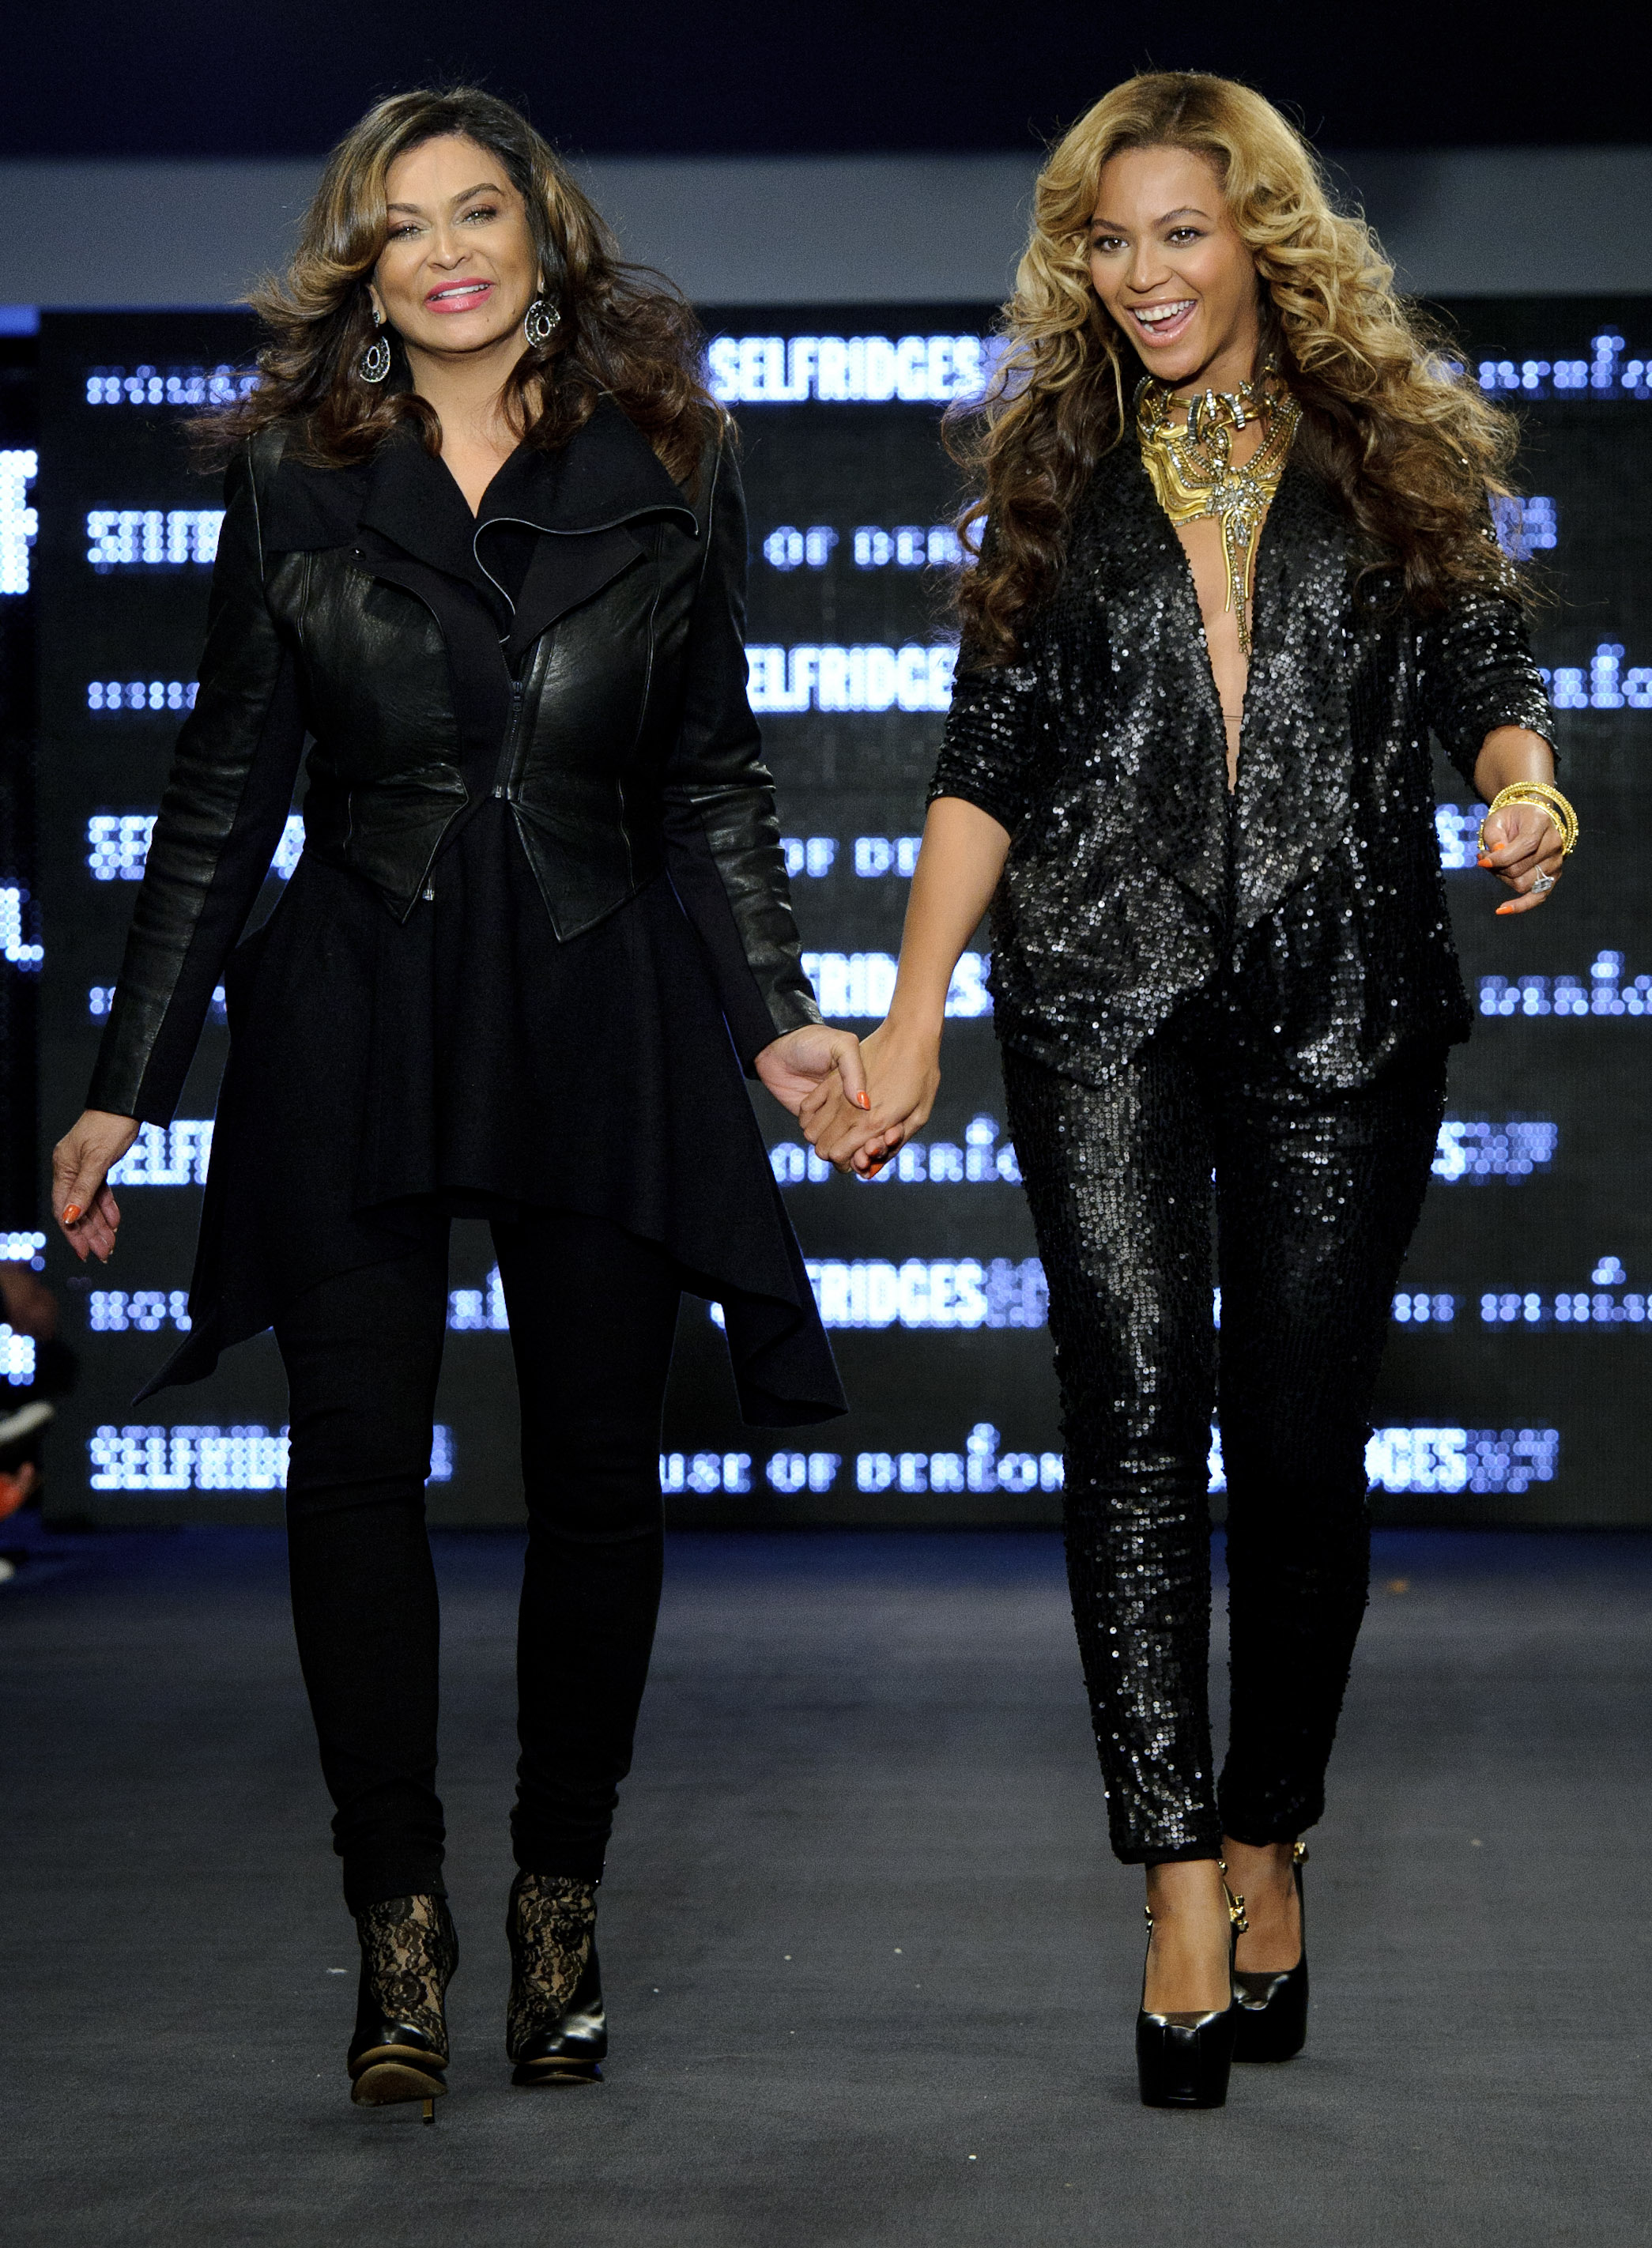 From left, U.S designer Tina Knowles and U.S singer Beyonce Knowles, launch their collection House of Dereon, featuring both the Autum-Winter and Summer 2011 collections, in London, during London Fashion week, Saturday, Sept. 17, 2011. (AP Photo/Jonathan Short)